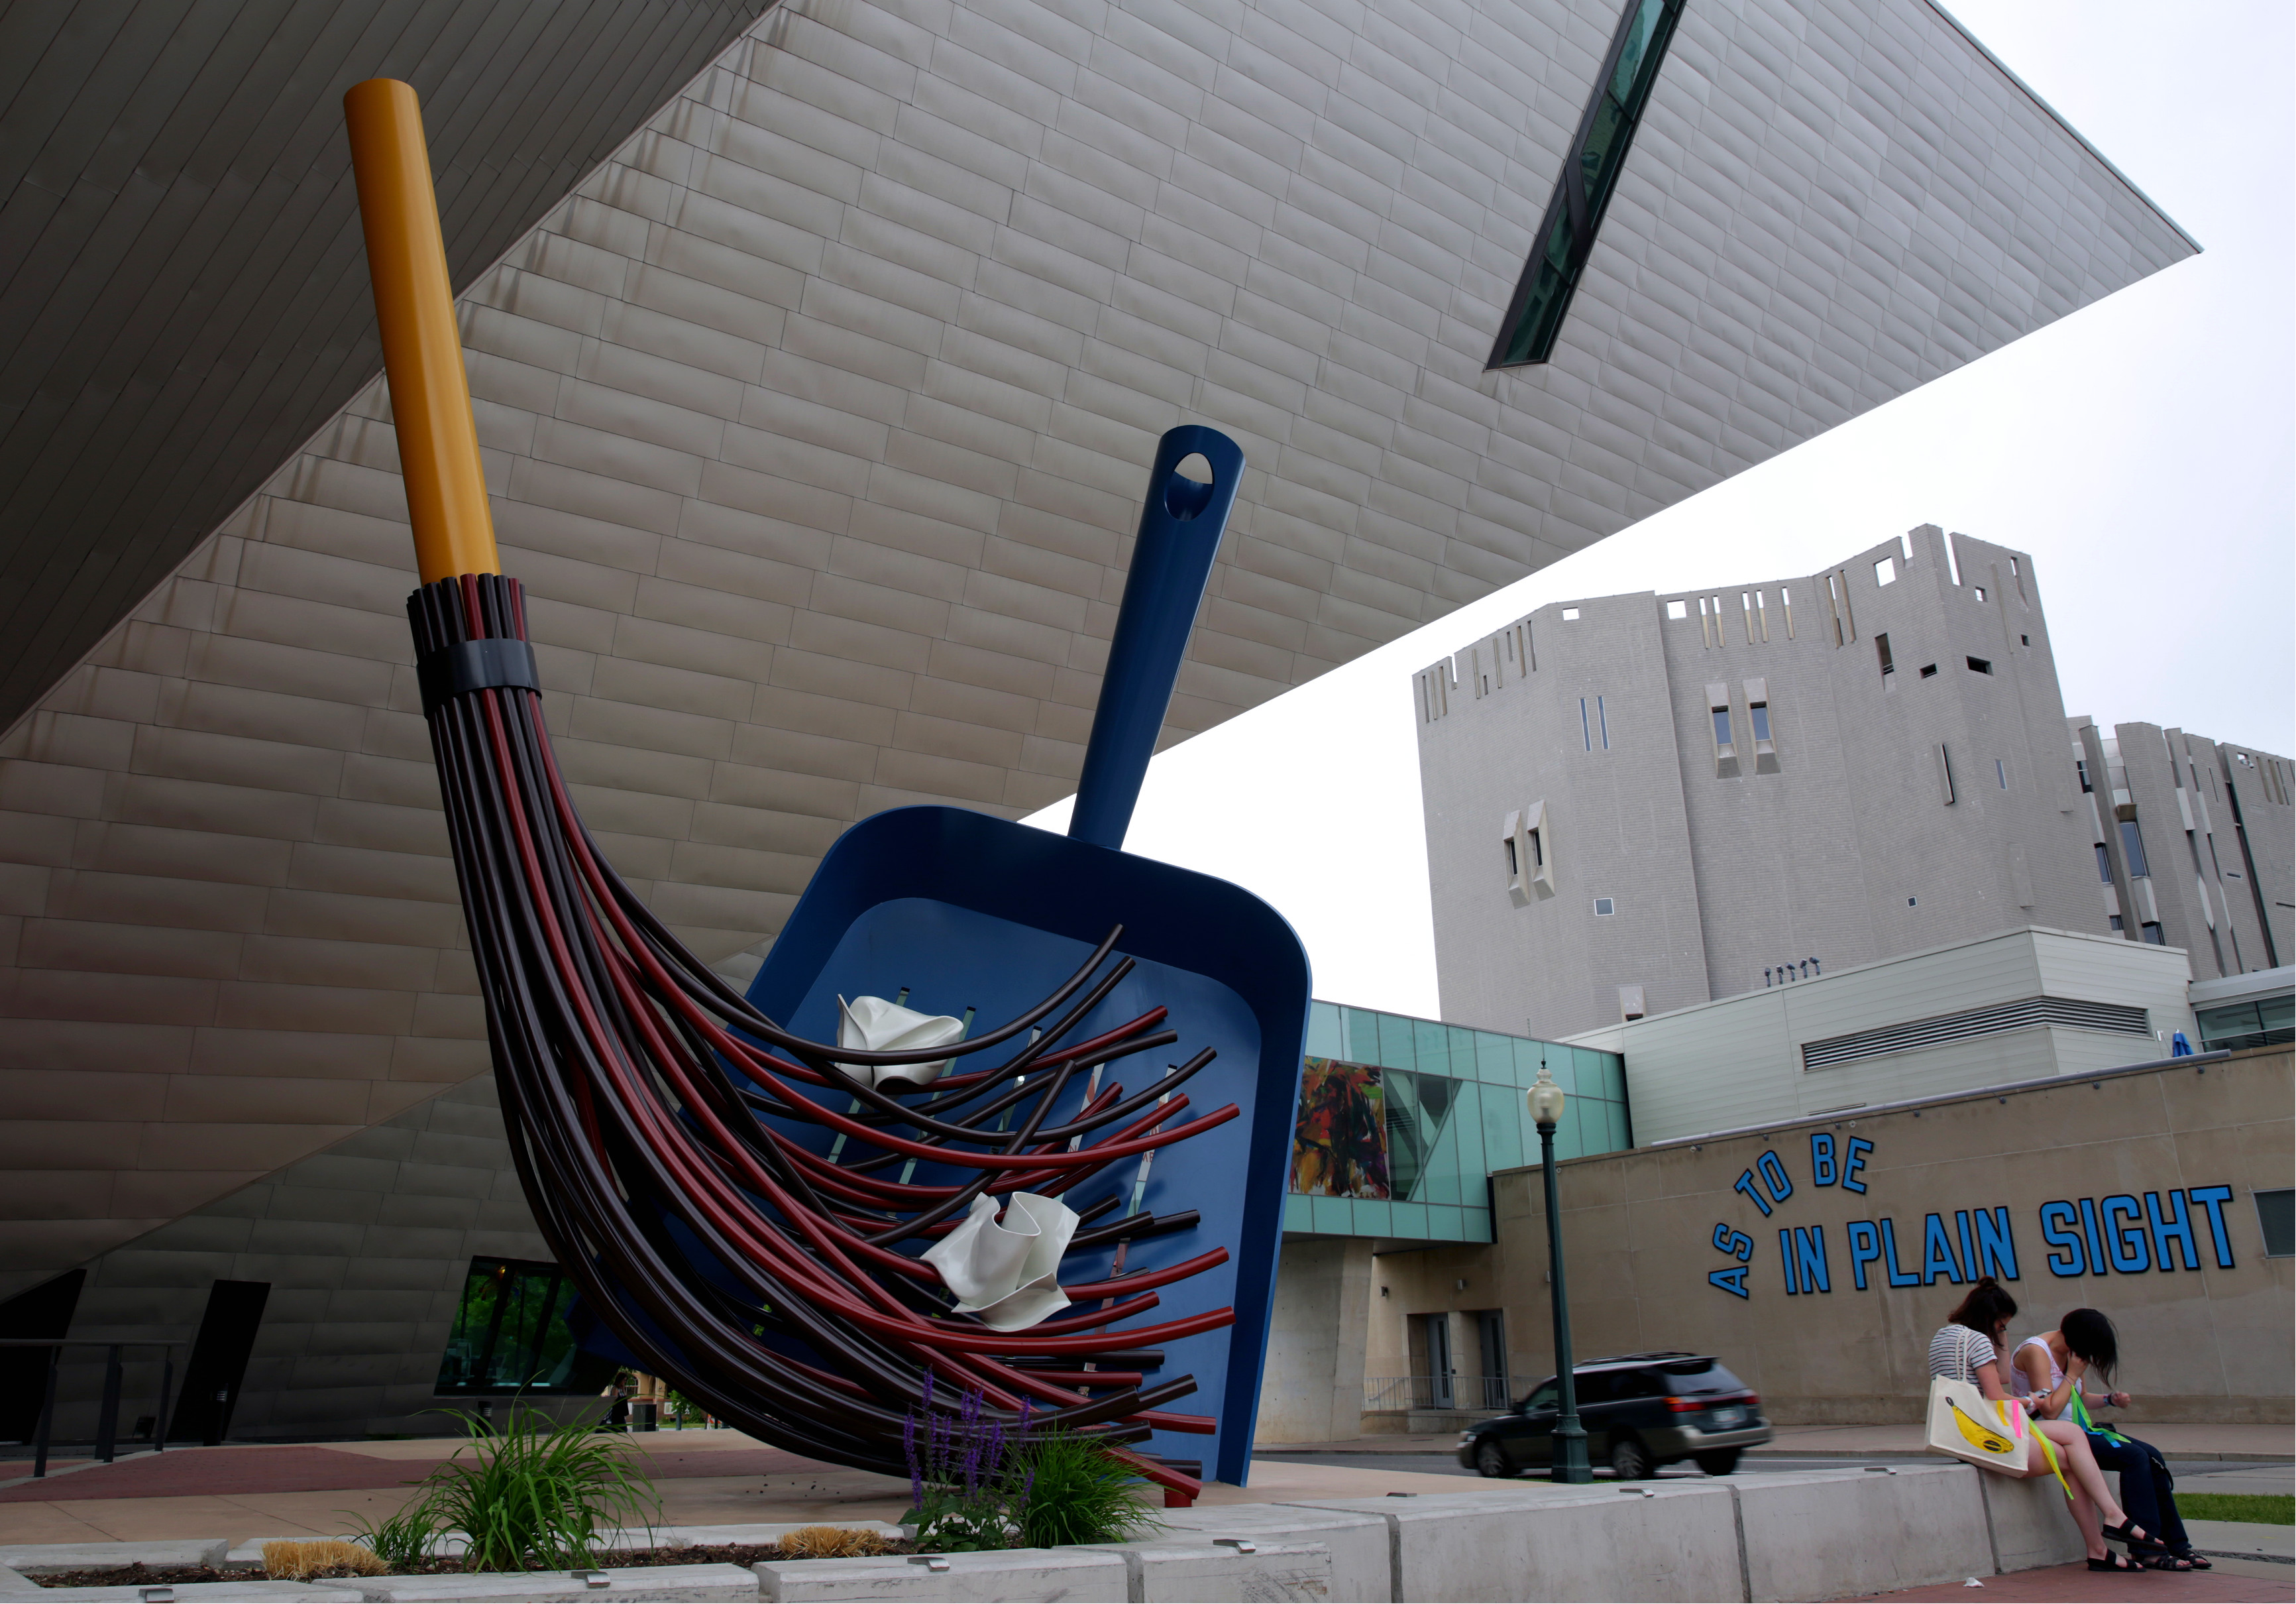 "<p><span style=""color: rgb(64, 69, 64); background-color: rgb(255, 255, 255);"">The ""Big Sweep"" </span> sits outside the Denver Art Museum in the Golden Triangle neighborhood, which was certified as a creative district by the state of Colorado in June 2016.</p>"